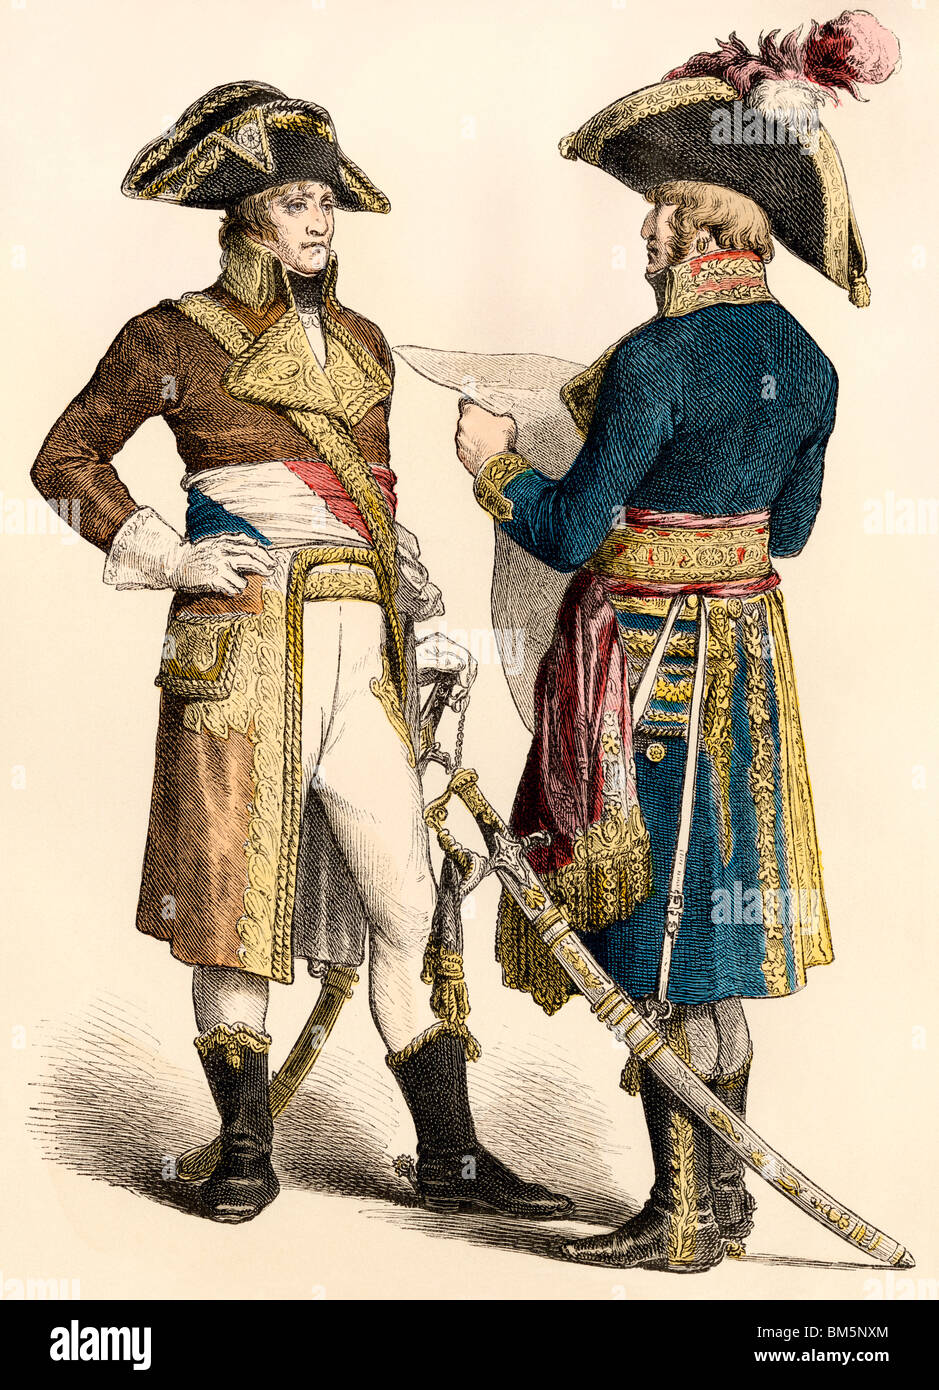 French generals during the early Napoleonic Wars, 1799-1800. Hand-colored print - Stock Image